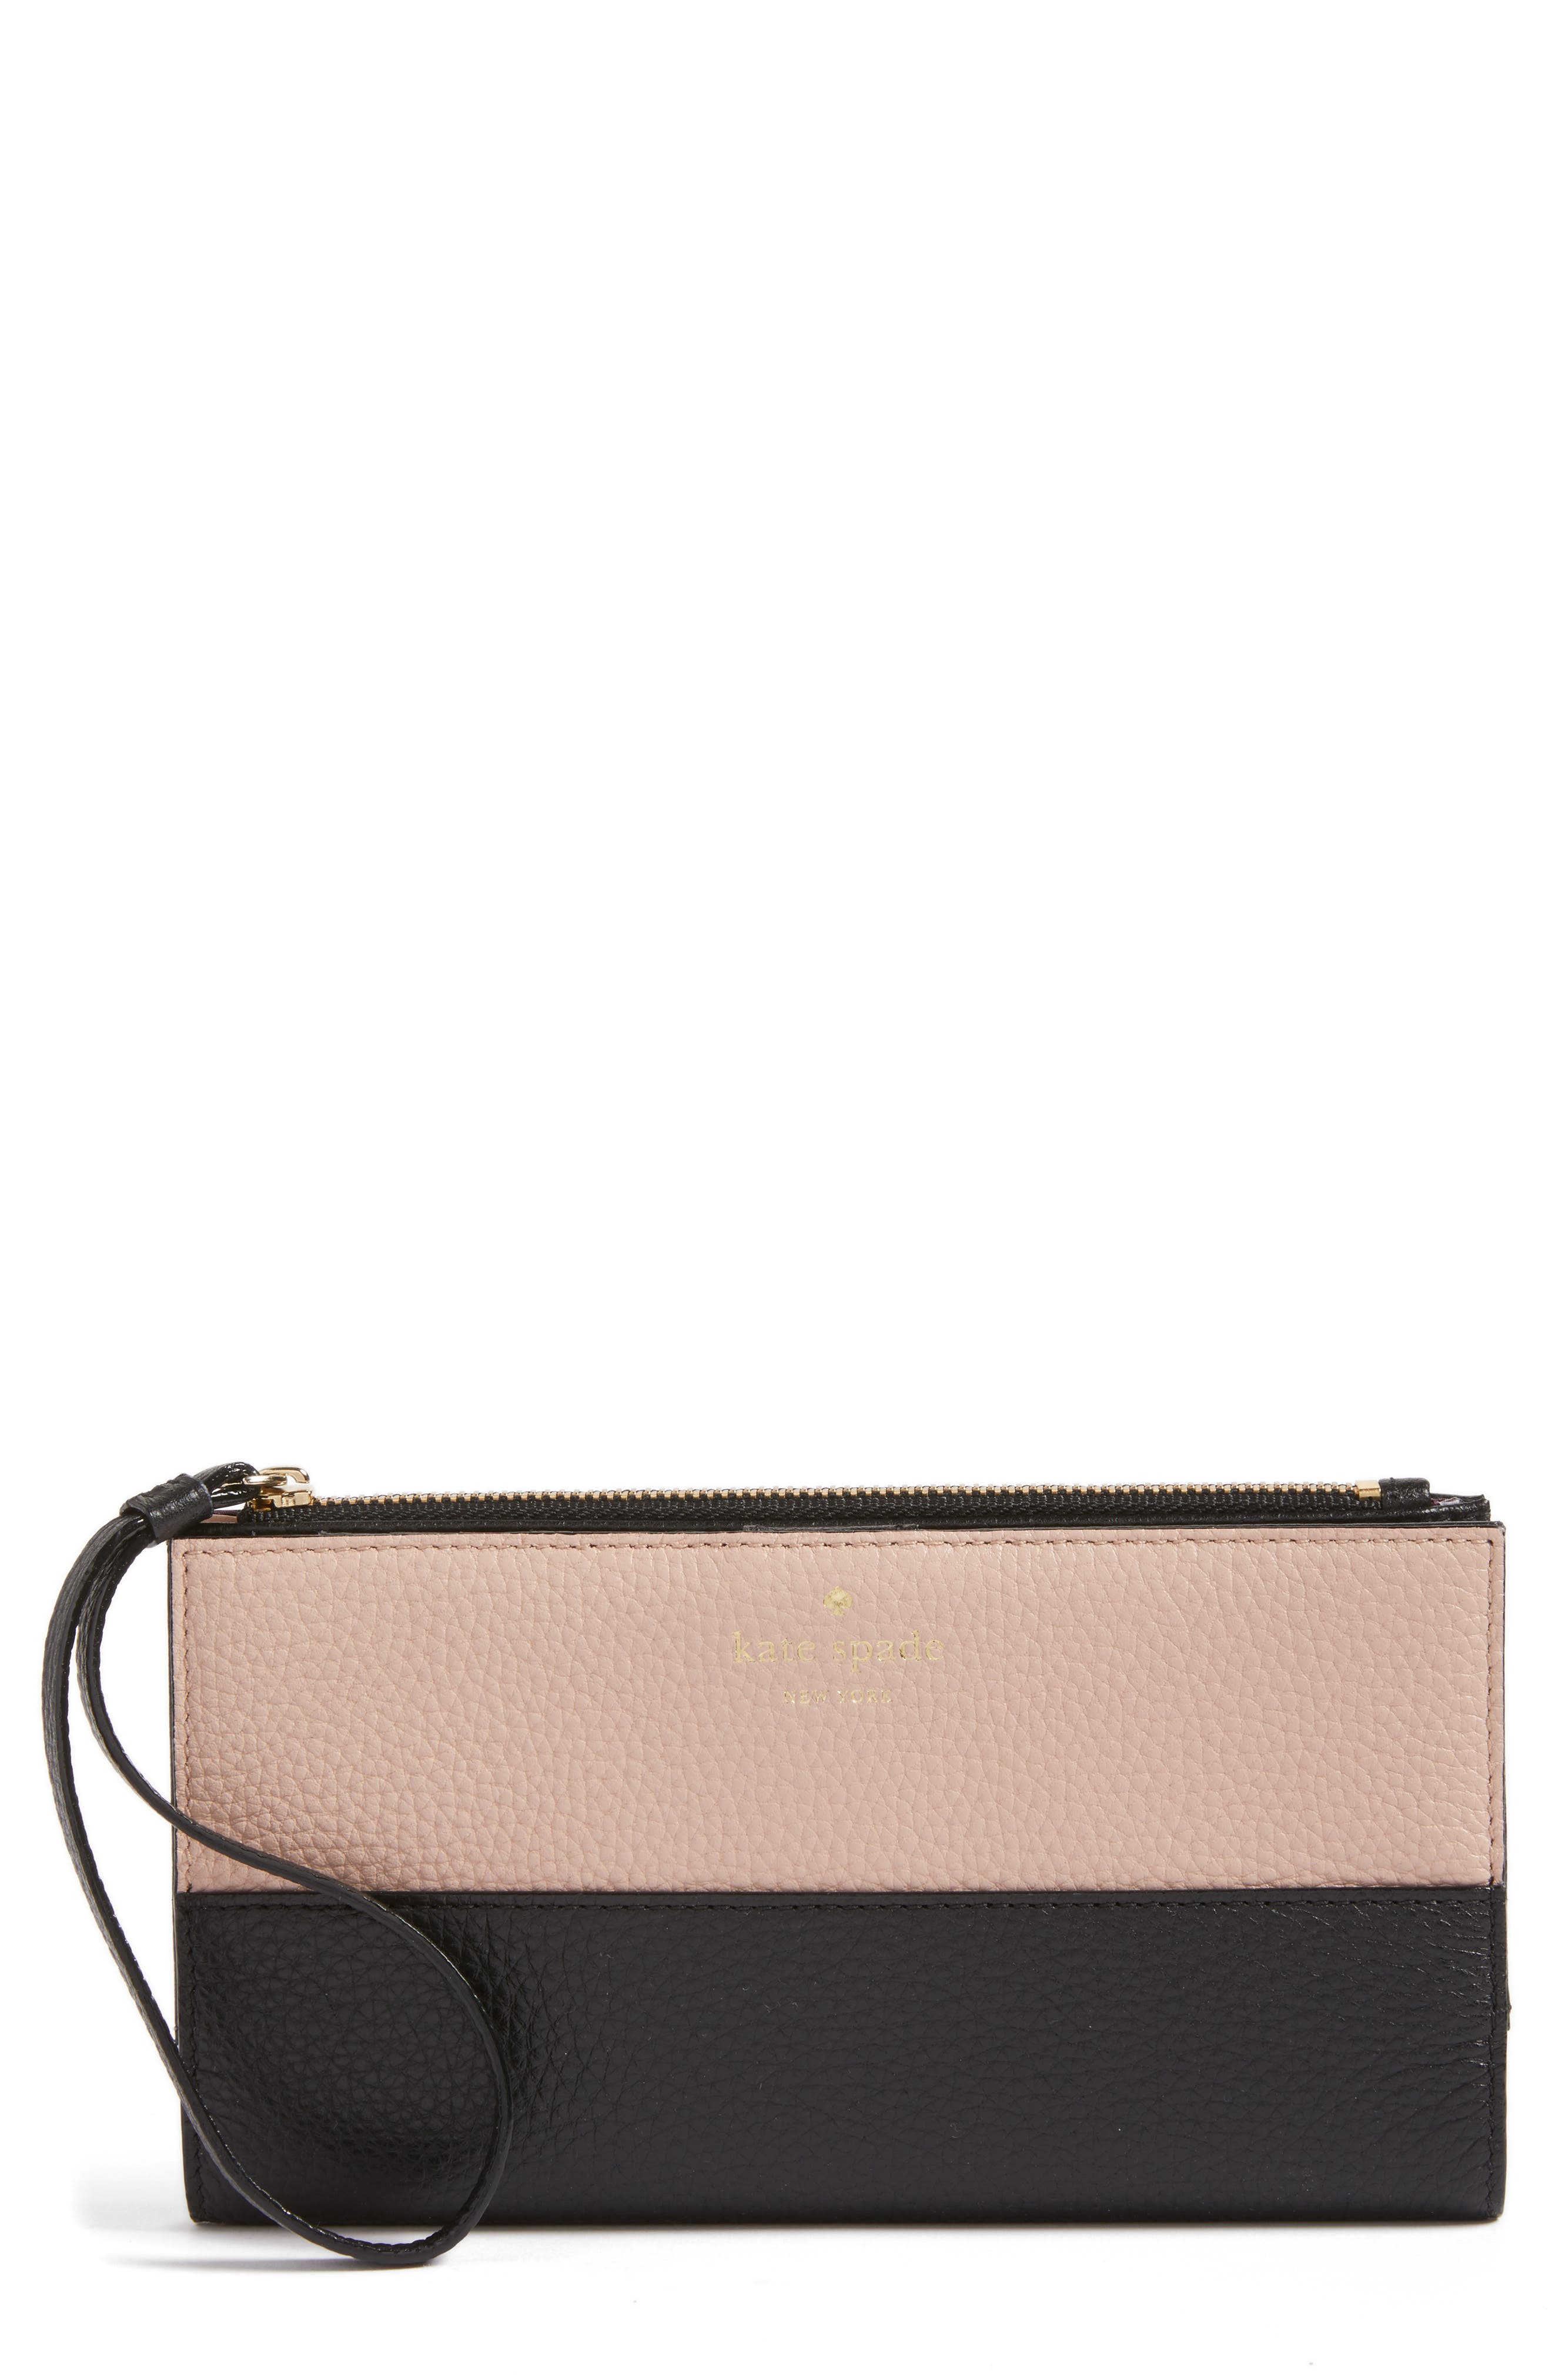 kate spade new york young lane - eliza leather wallet